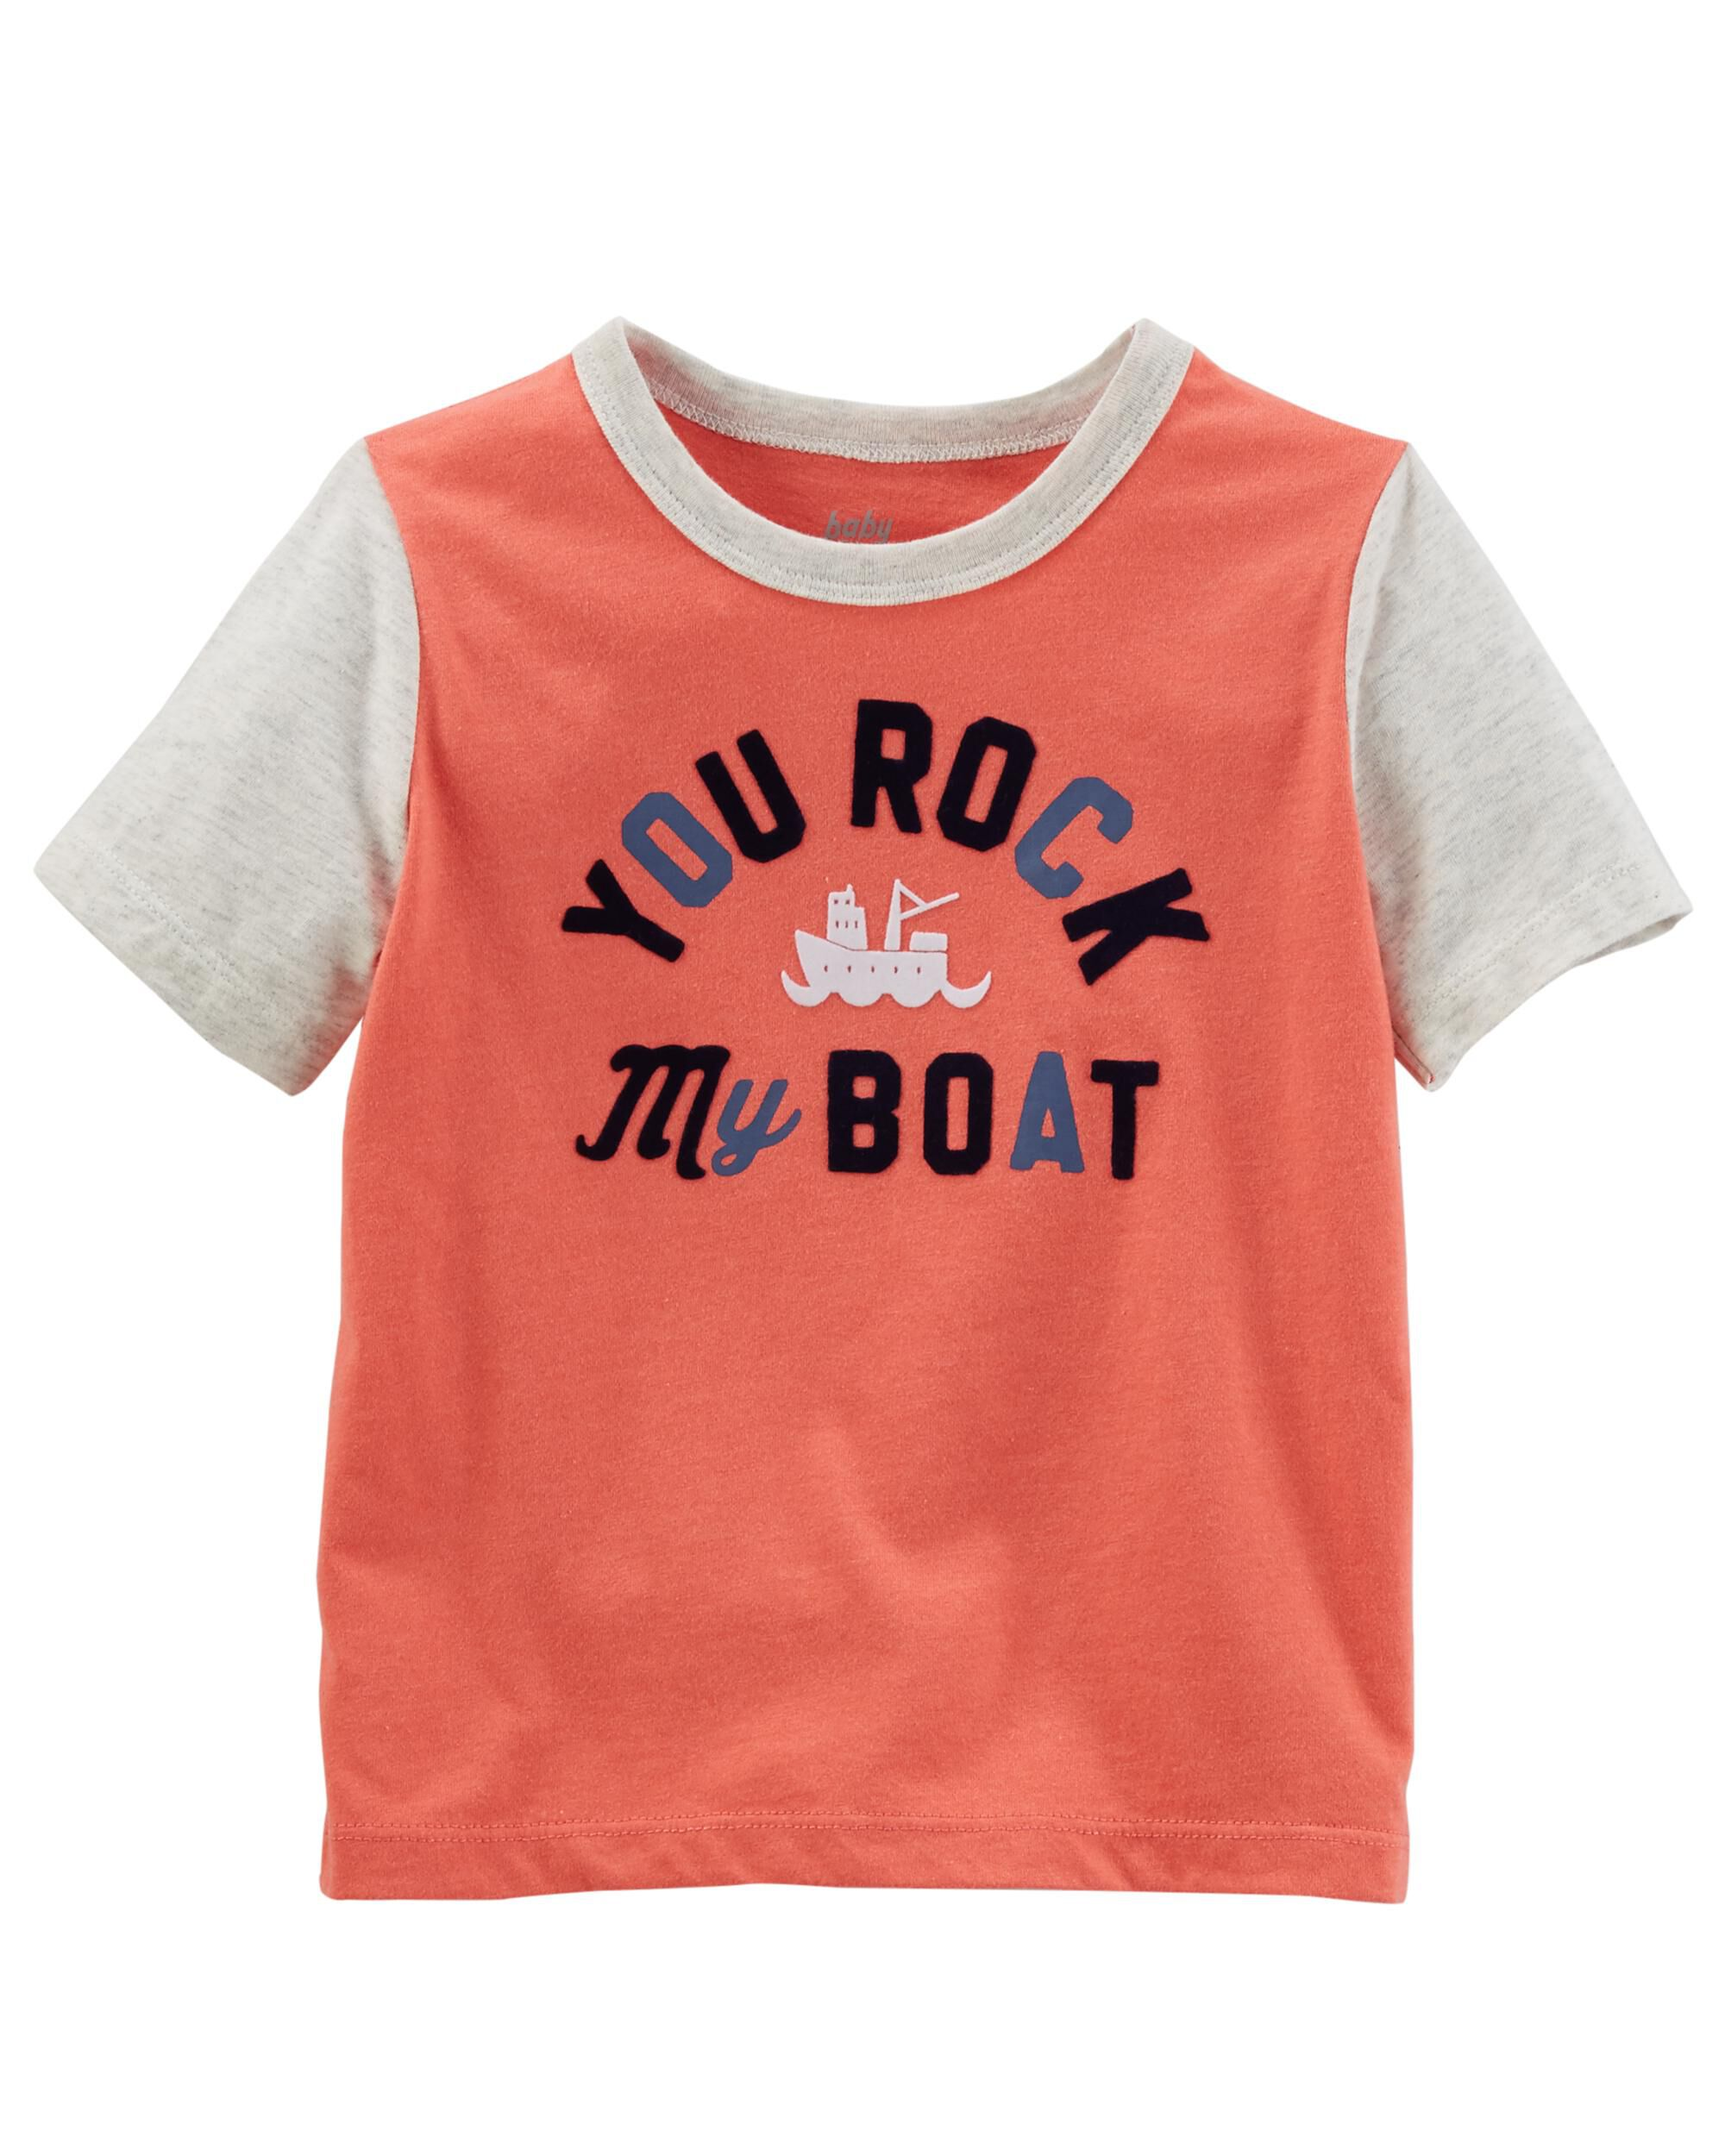 Boat Graphic Tee